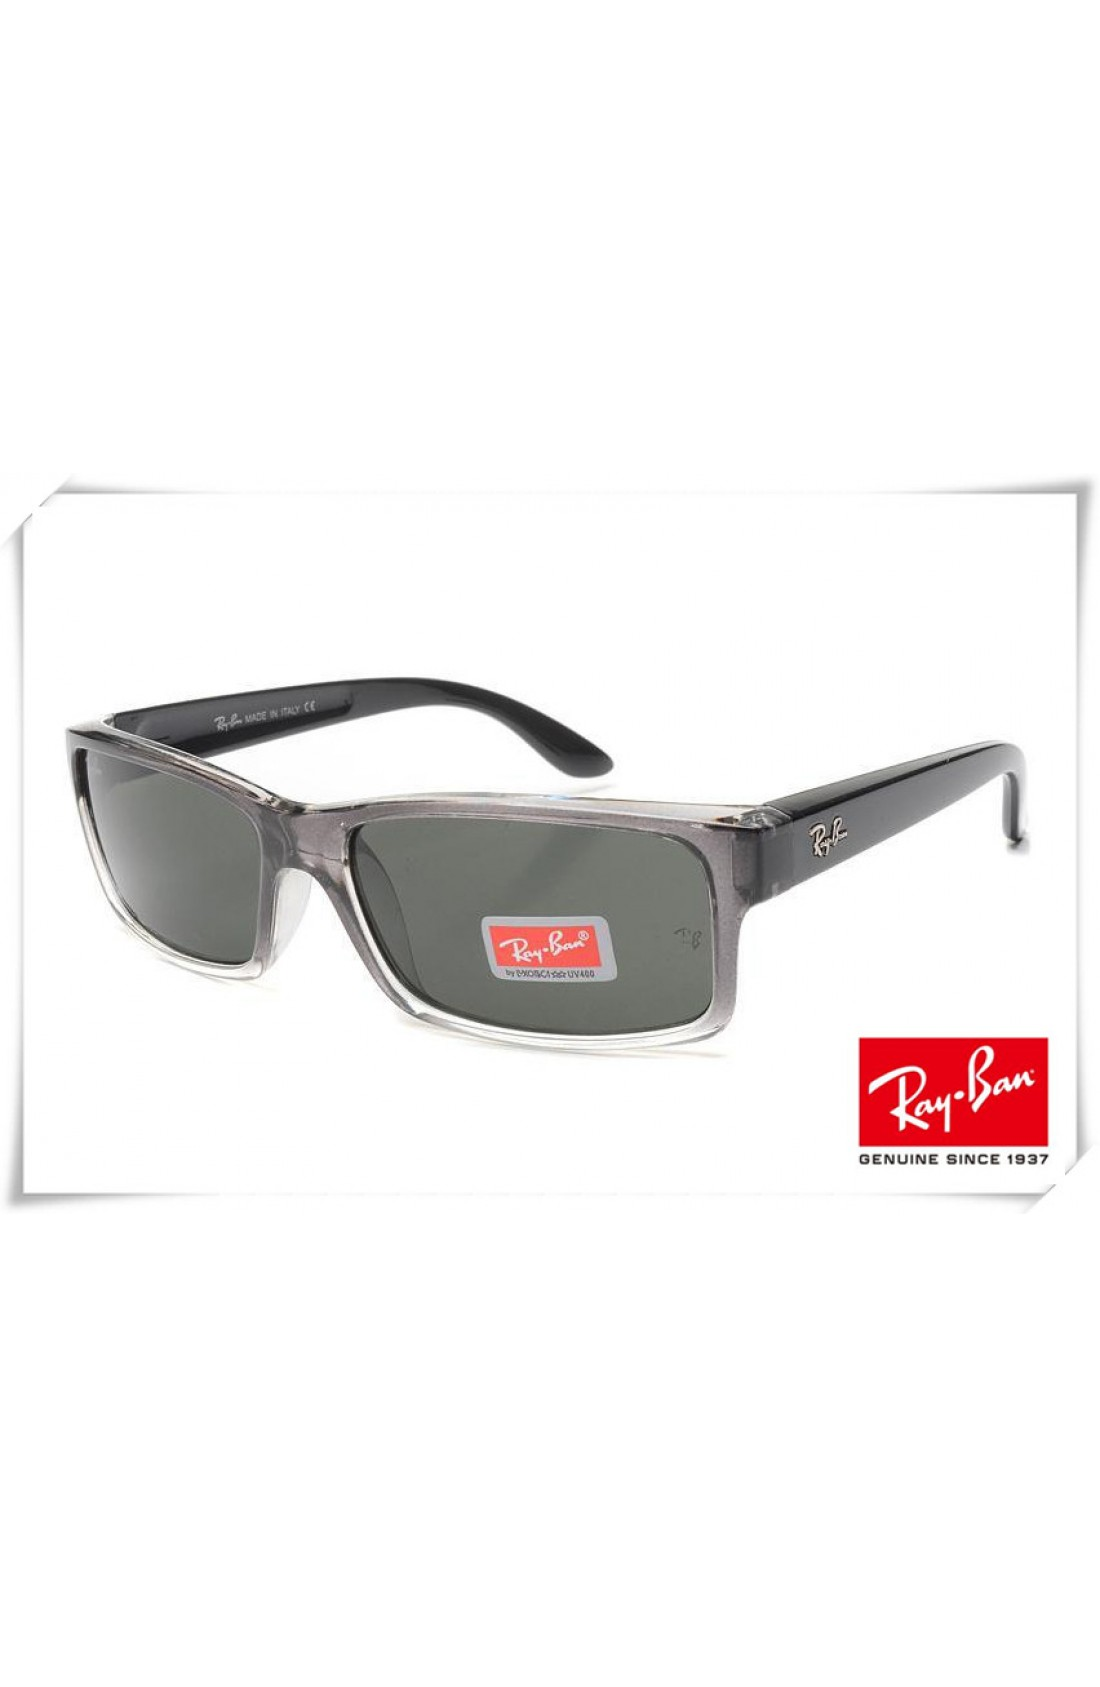 5603bd12bc6 Wholesale Ray Ban RB4151 Sunglasses Black Clear Frame Classic Green Lens